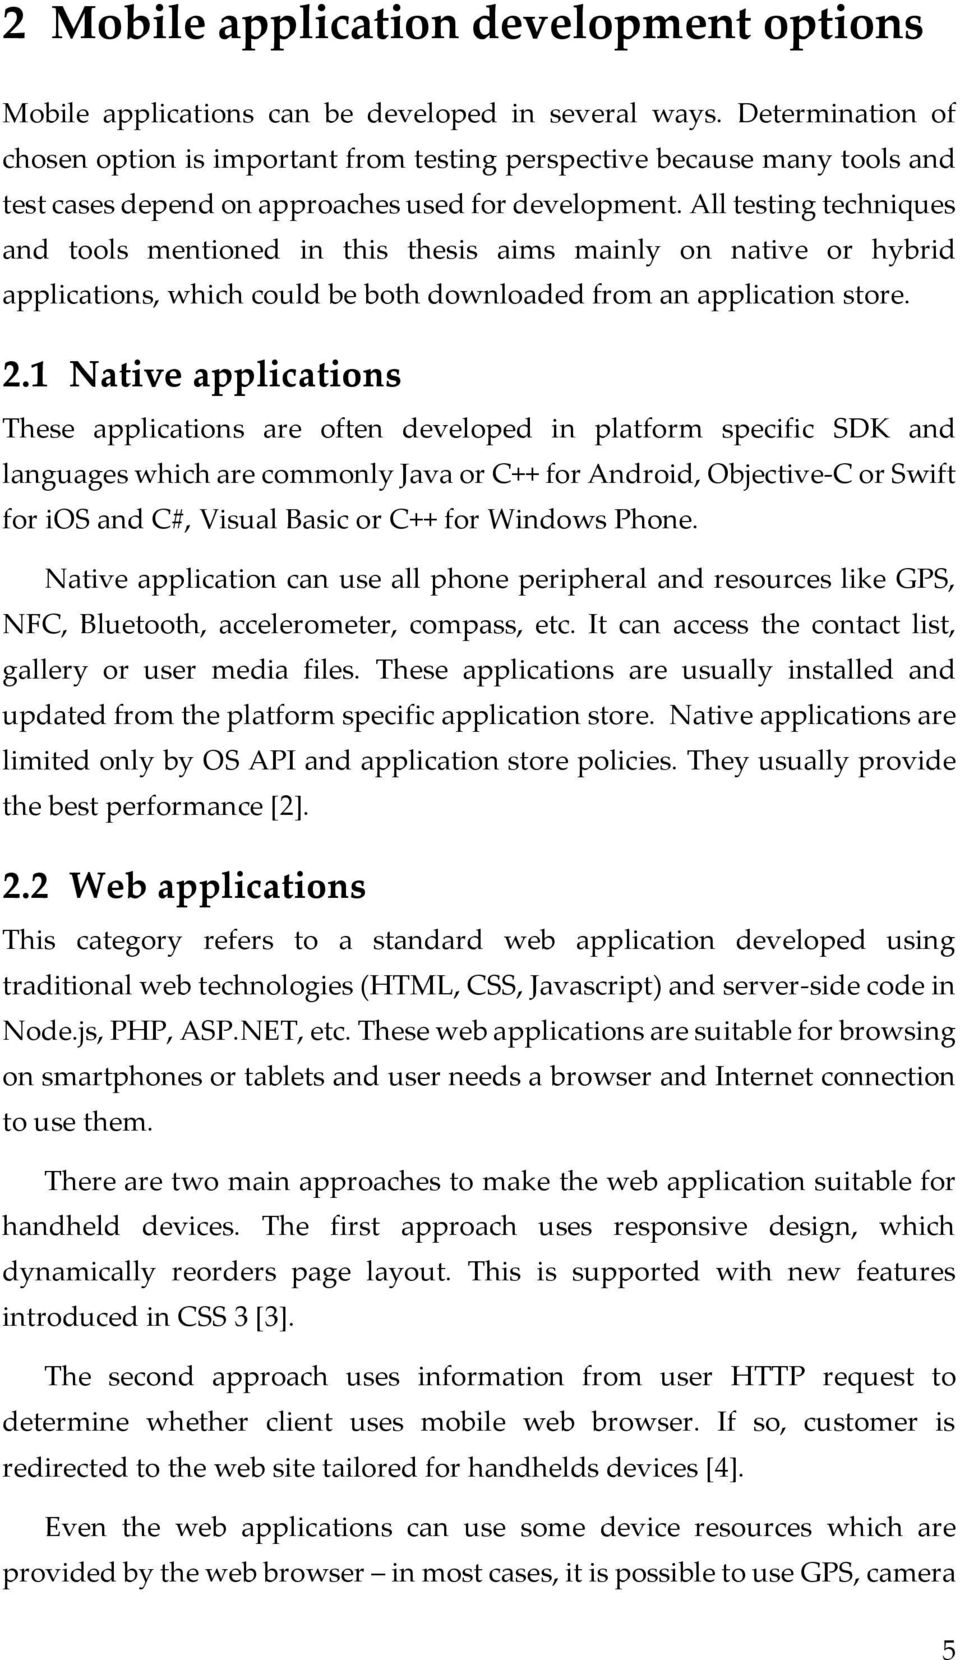 All testing techniques and tools mentioned in this thesis aims mainly on native or hybrid applications, which could be both downloaded from an application store. 2.